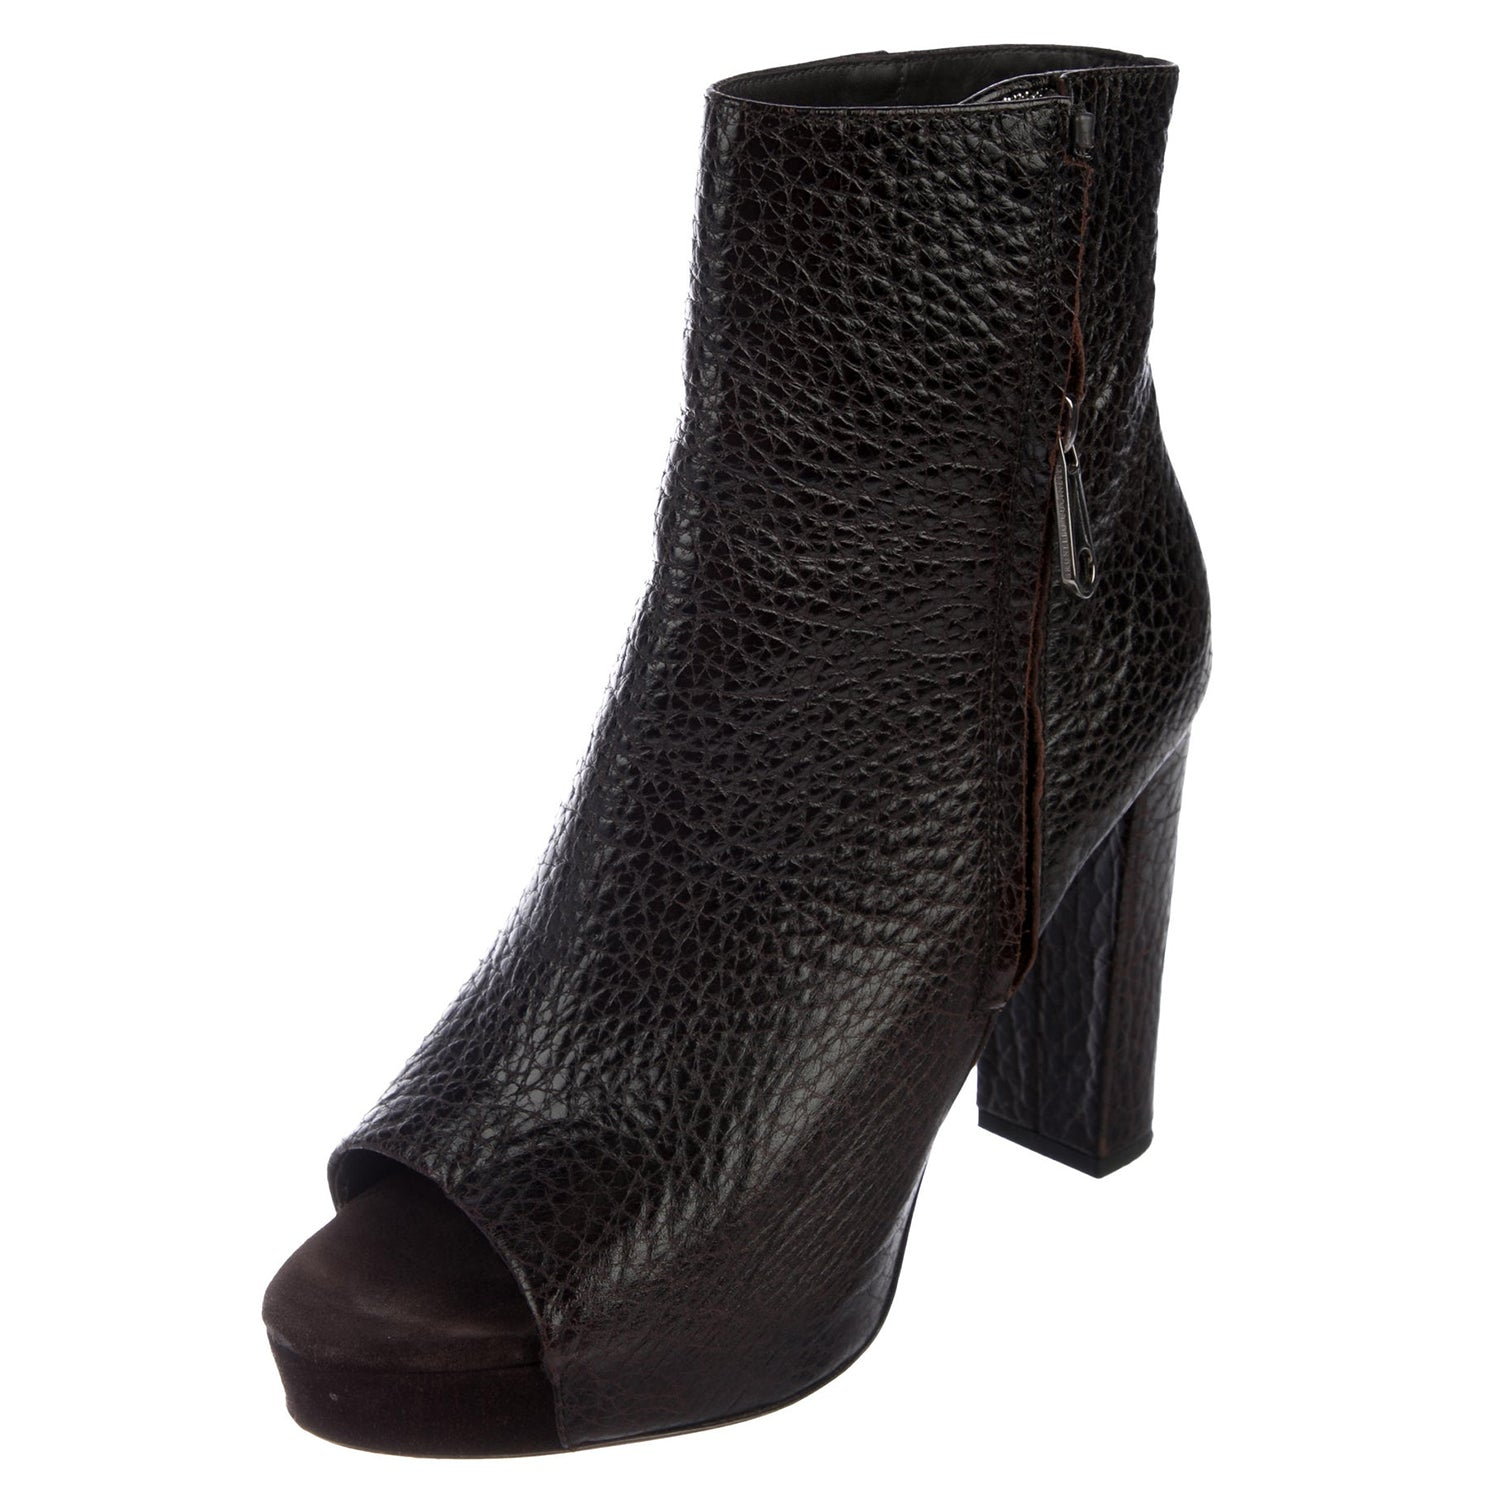 Brunello Cucinelli Leather Ankle Booties